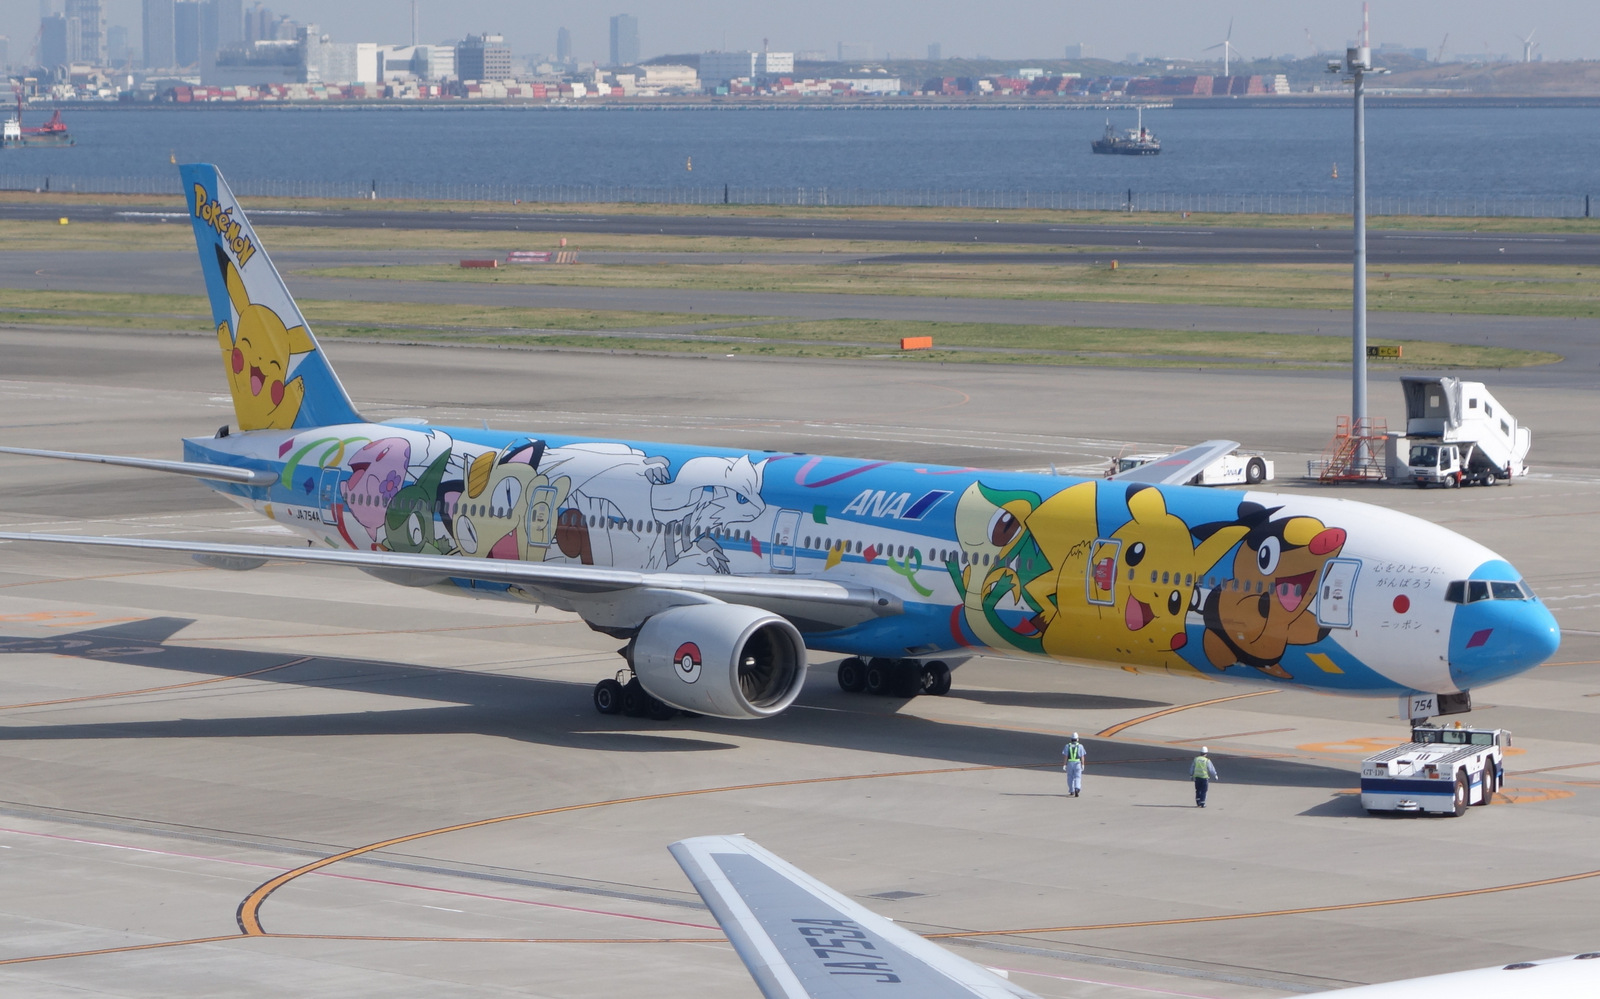 ANA Pokemon 777-300 at HND